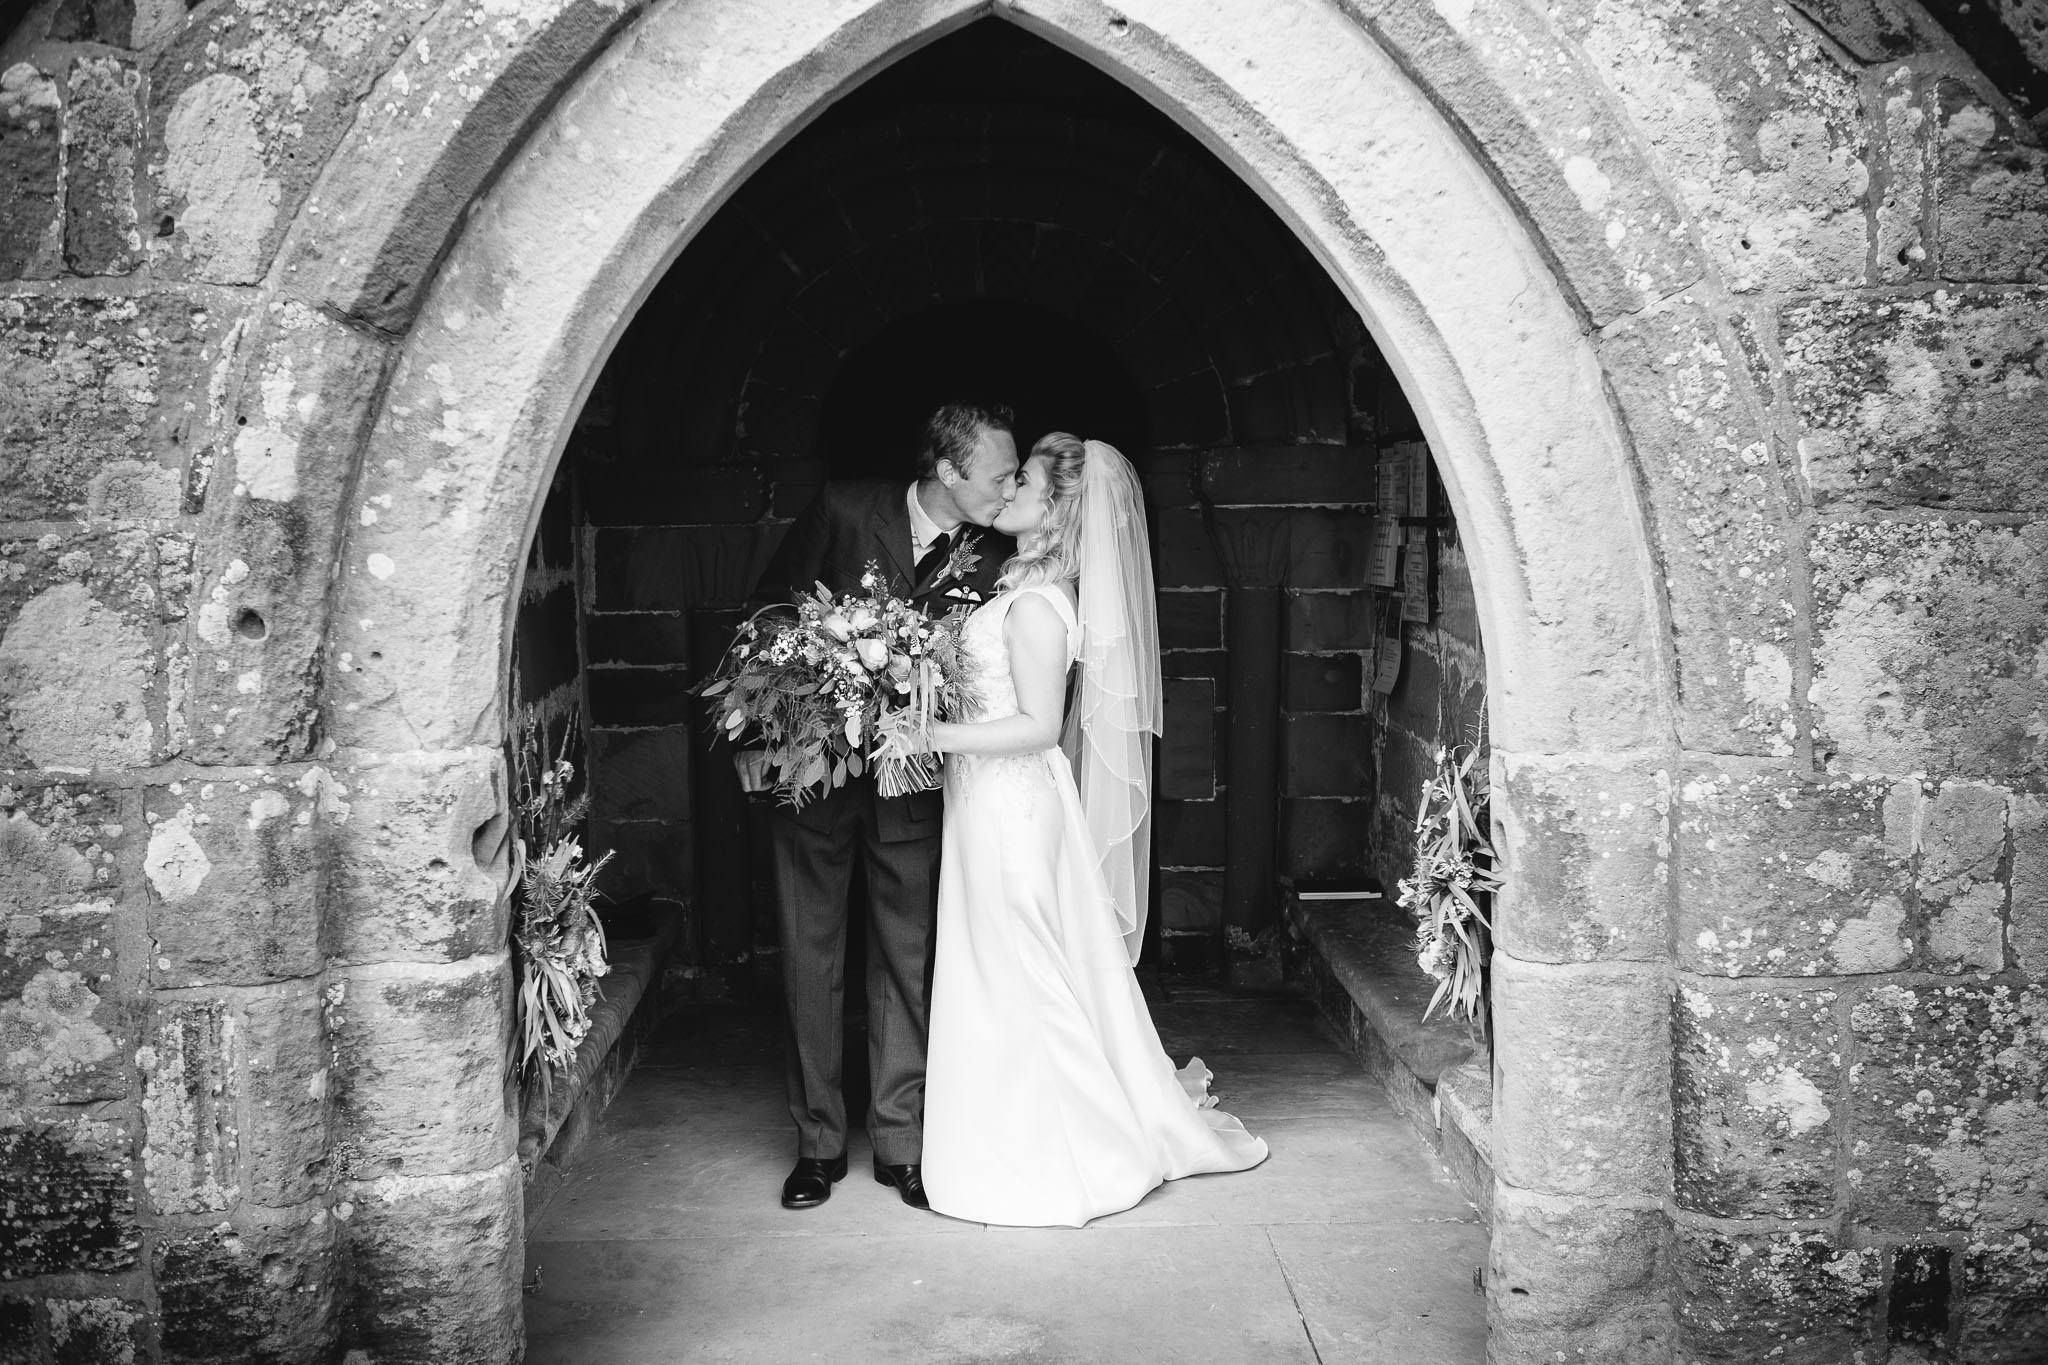 A black and white photo of the bride and groom kissing in the archway of the church